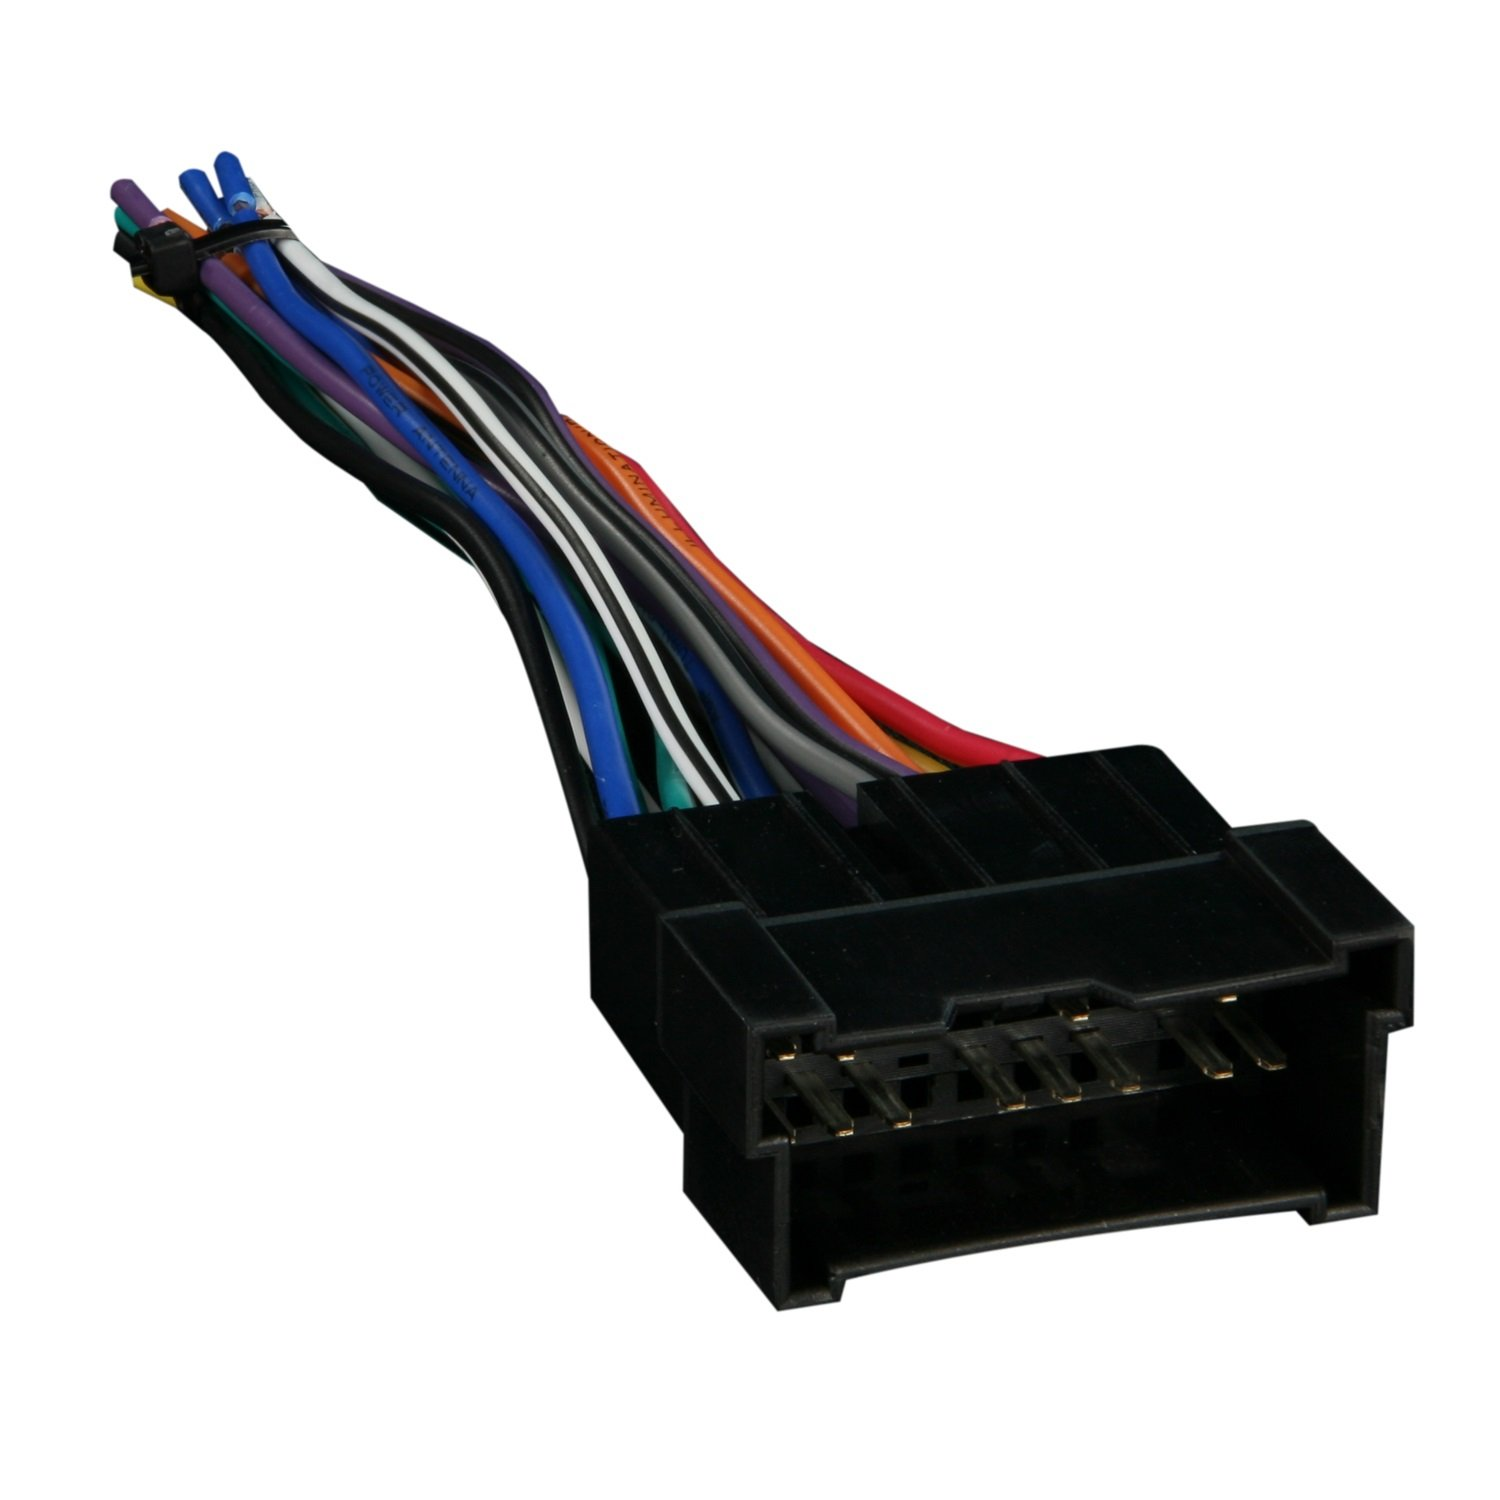 617yeBmOquL._SL1500_ amazon com metra 70 7301 radio wiring harness for hyundai kia 99 Radio Wiring Harness Adapter at eliteediting.co